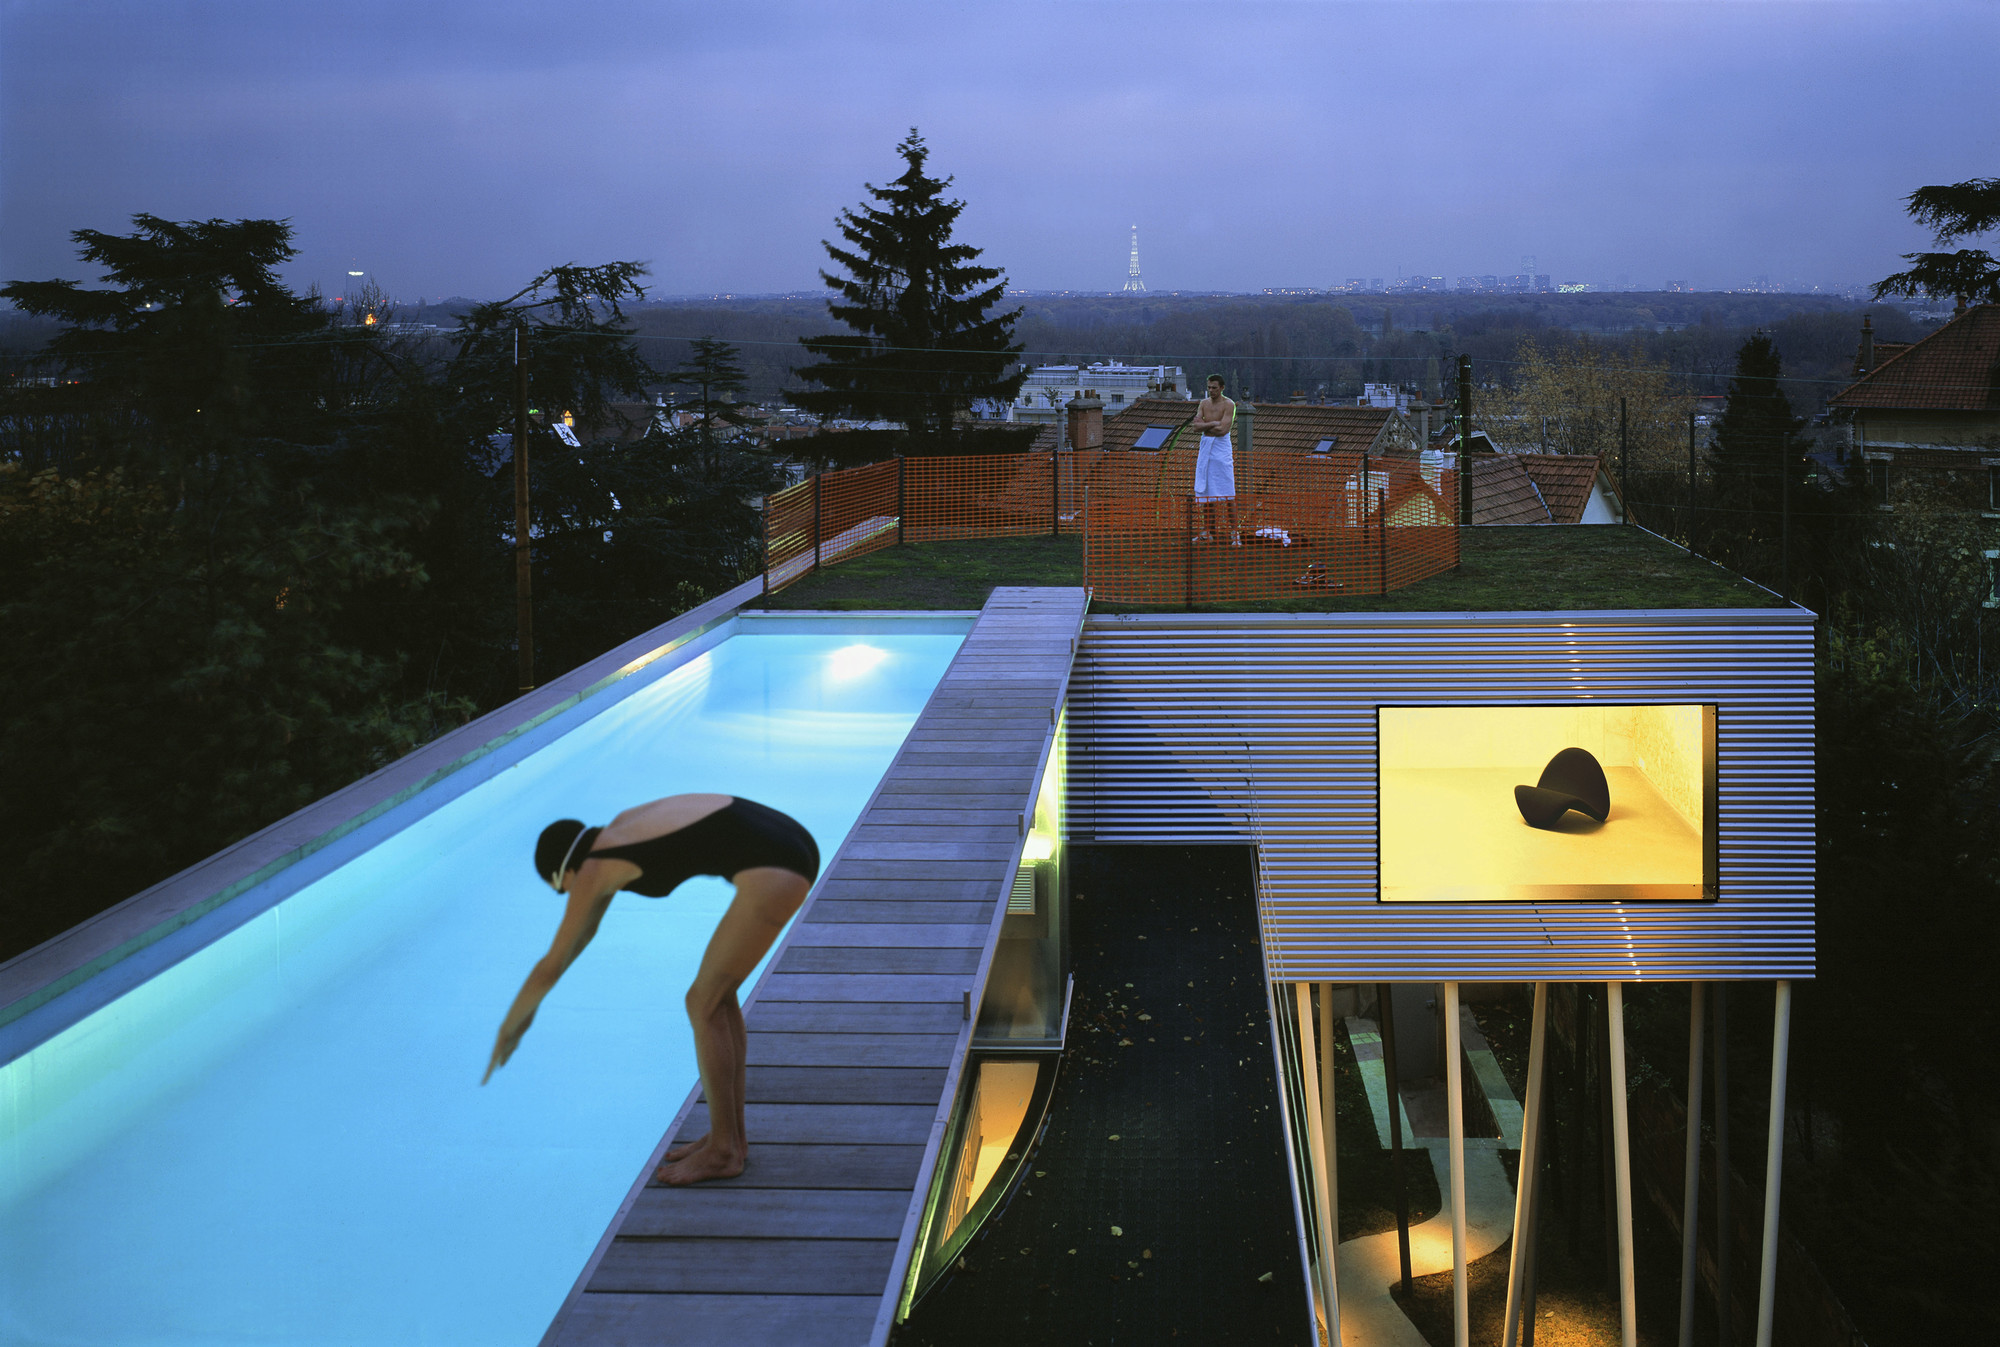 Private Urban Paradise 13 Dreamy Residential Rooftop Pools Gardens Urbanist